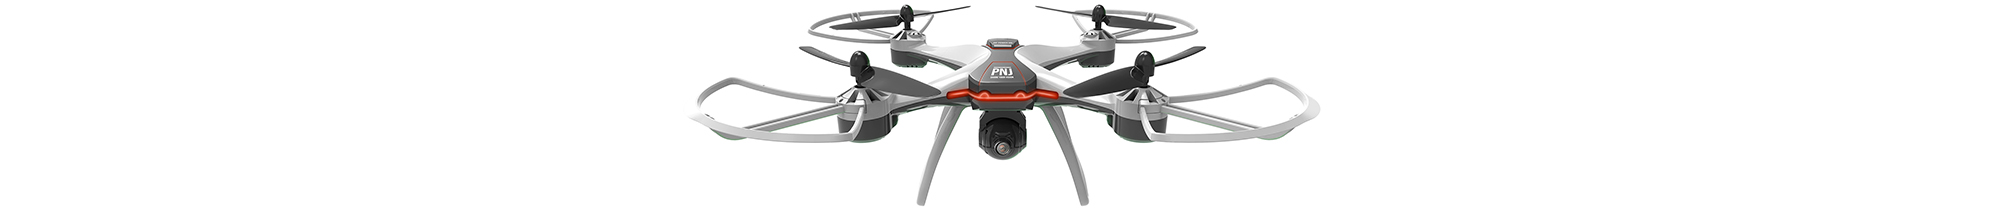 DR POWER HD GPS drone with a FPV mask